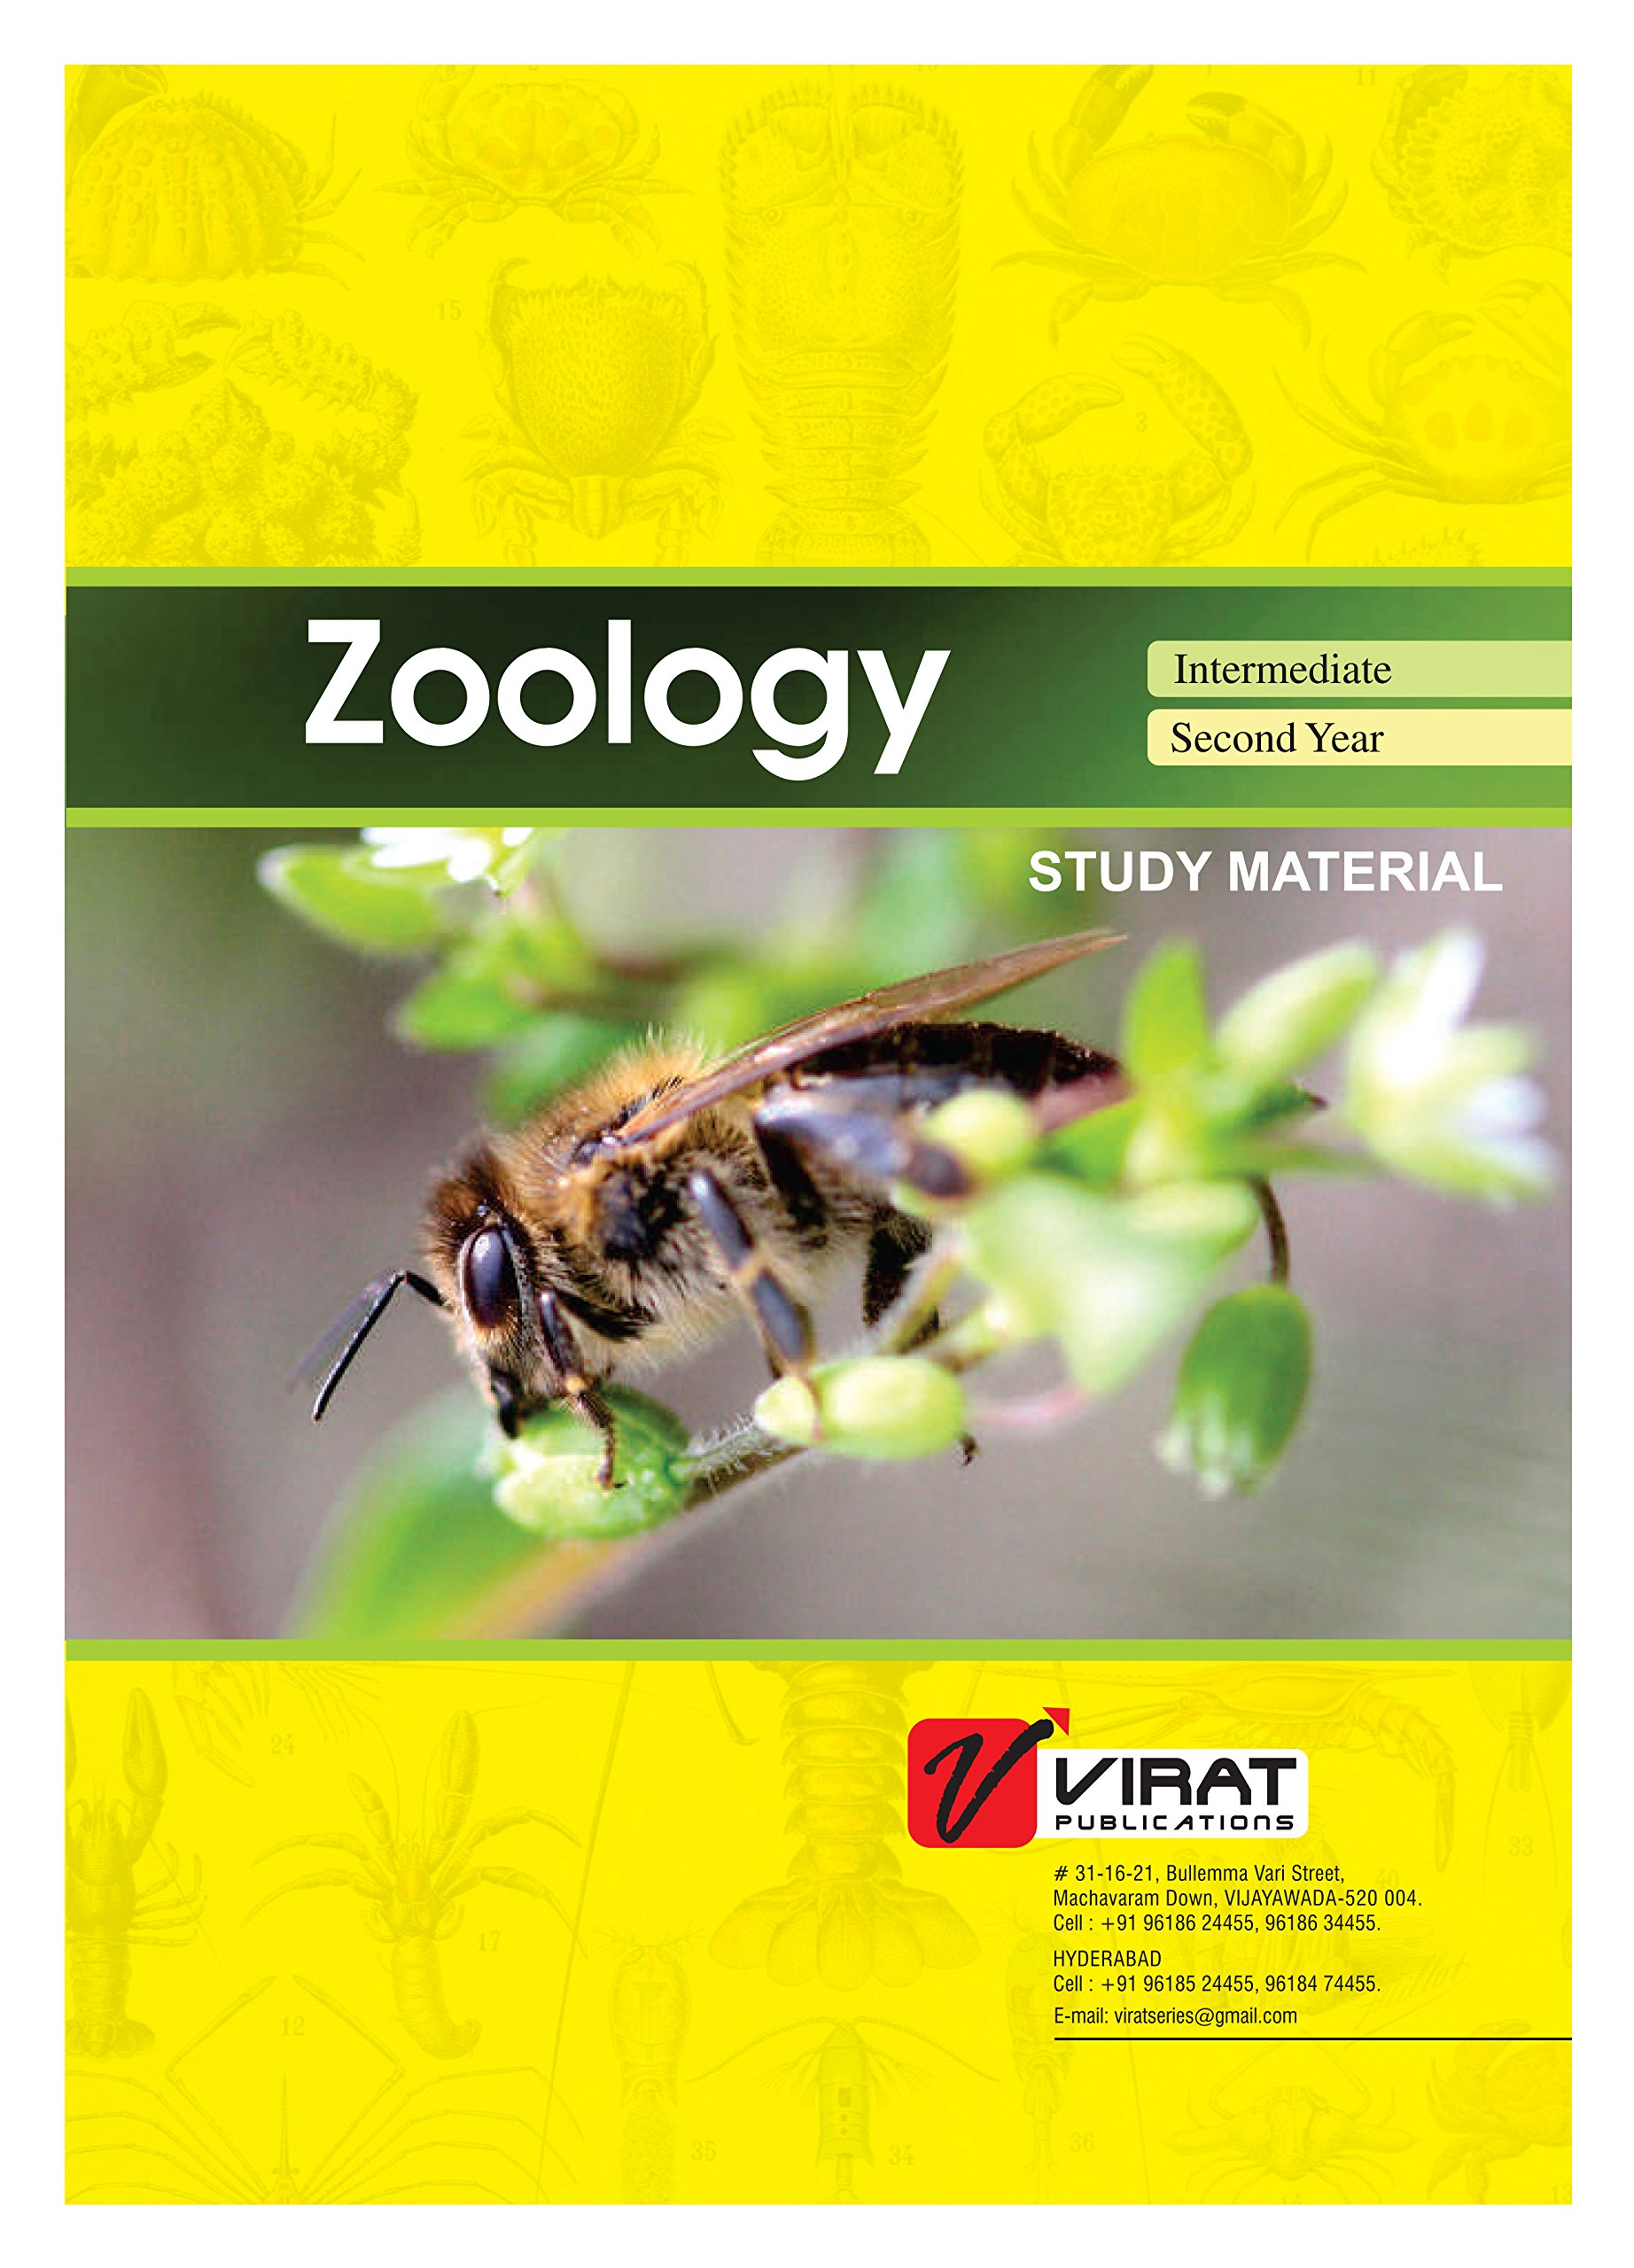 Buy Telugu Academy Zoology Study Material for Intermediate